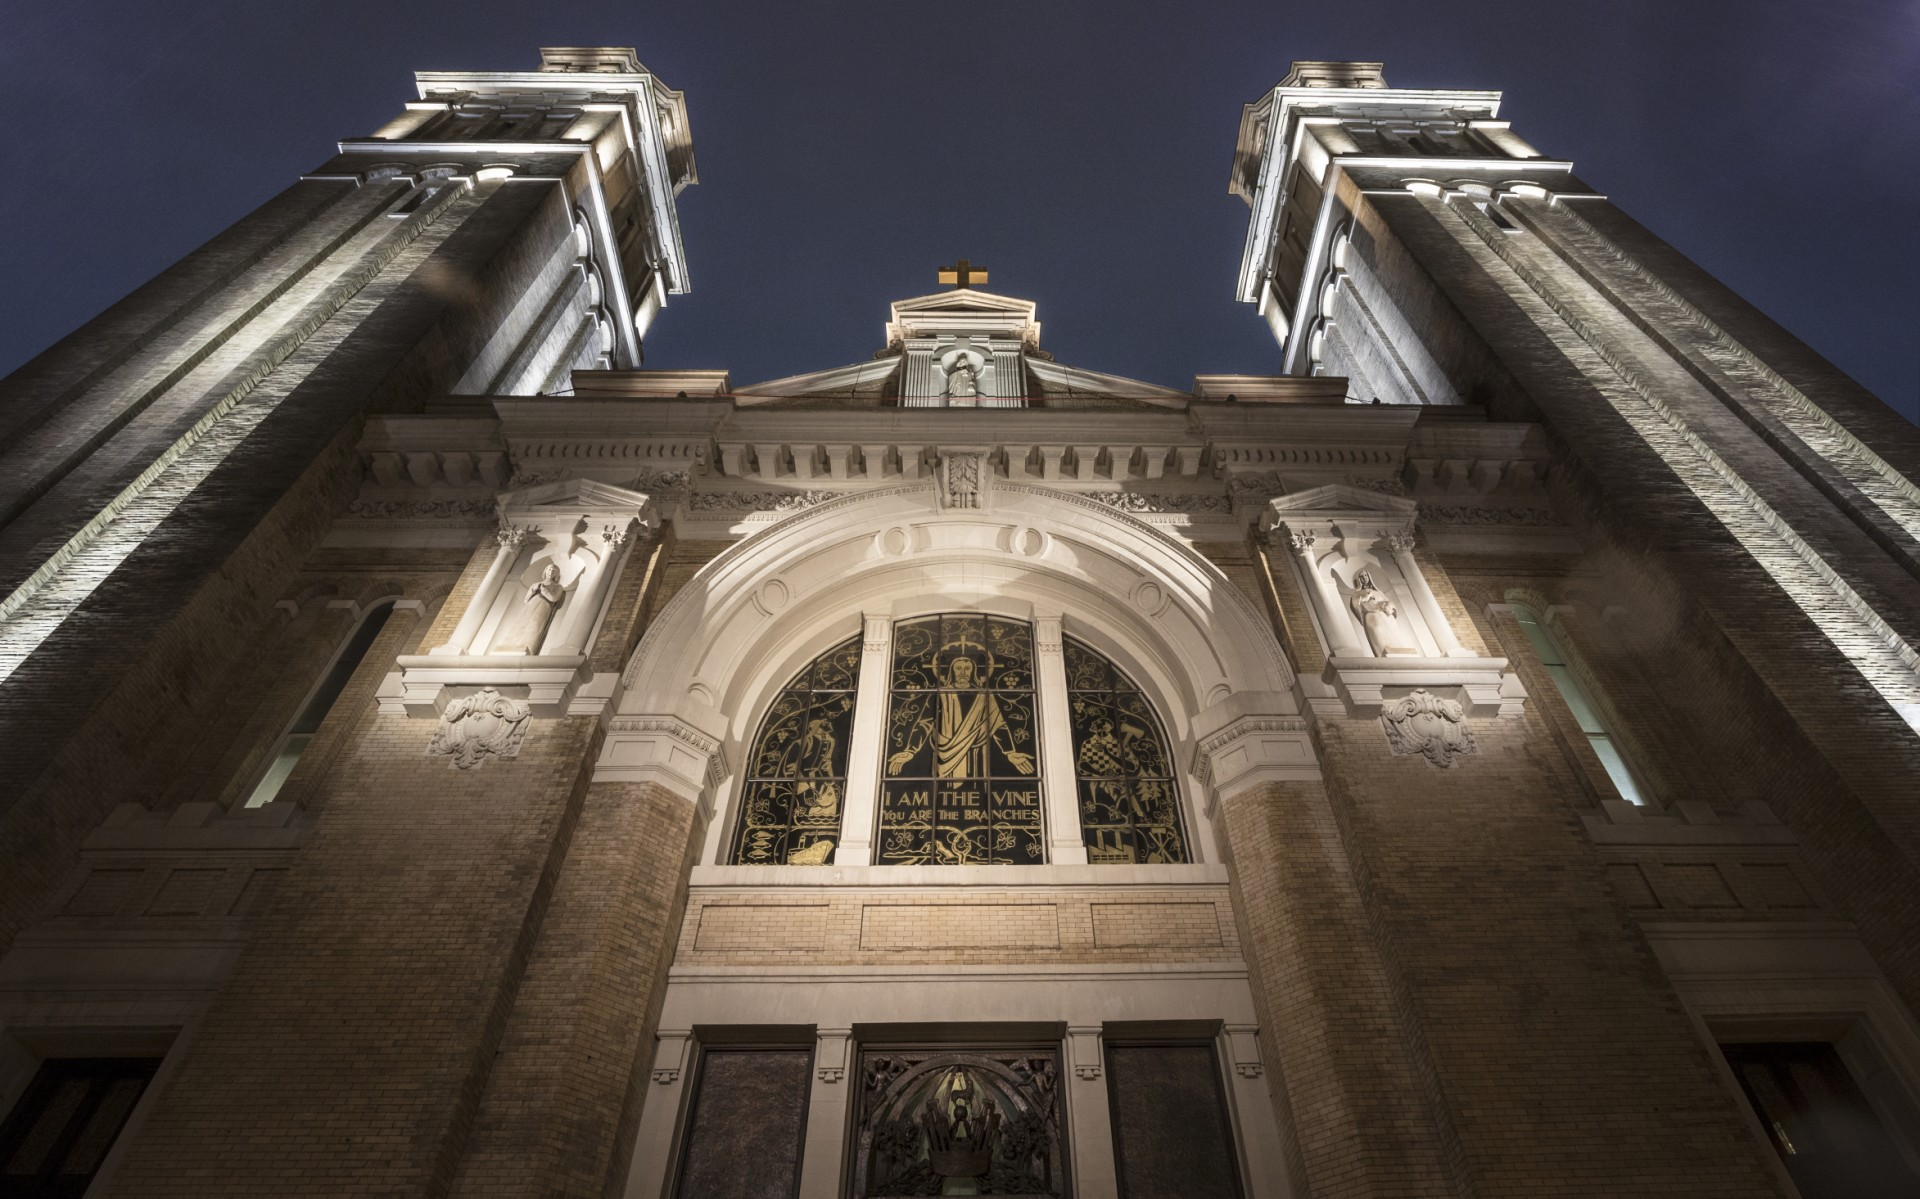 Working with church leadership and consulting architect Stephen Lee, Eluned devised a two-part, all-LED solution to replace the cathedral's outdated HID and CFL exterior lighting.